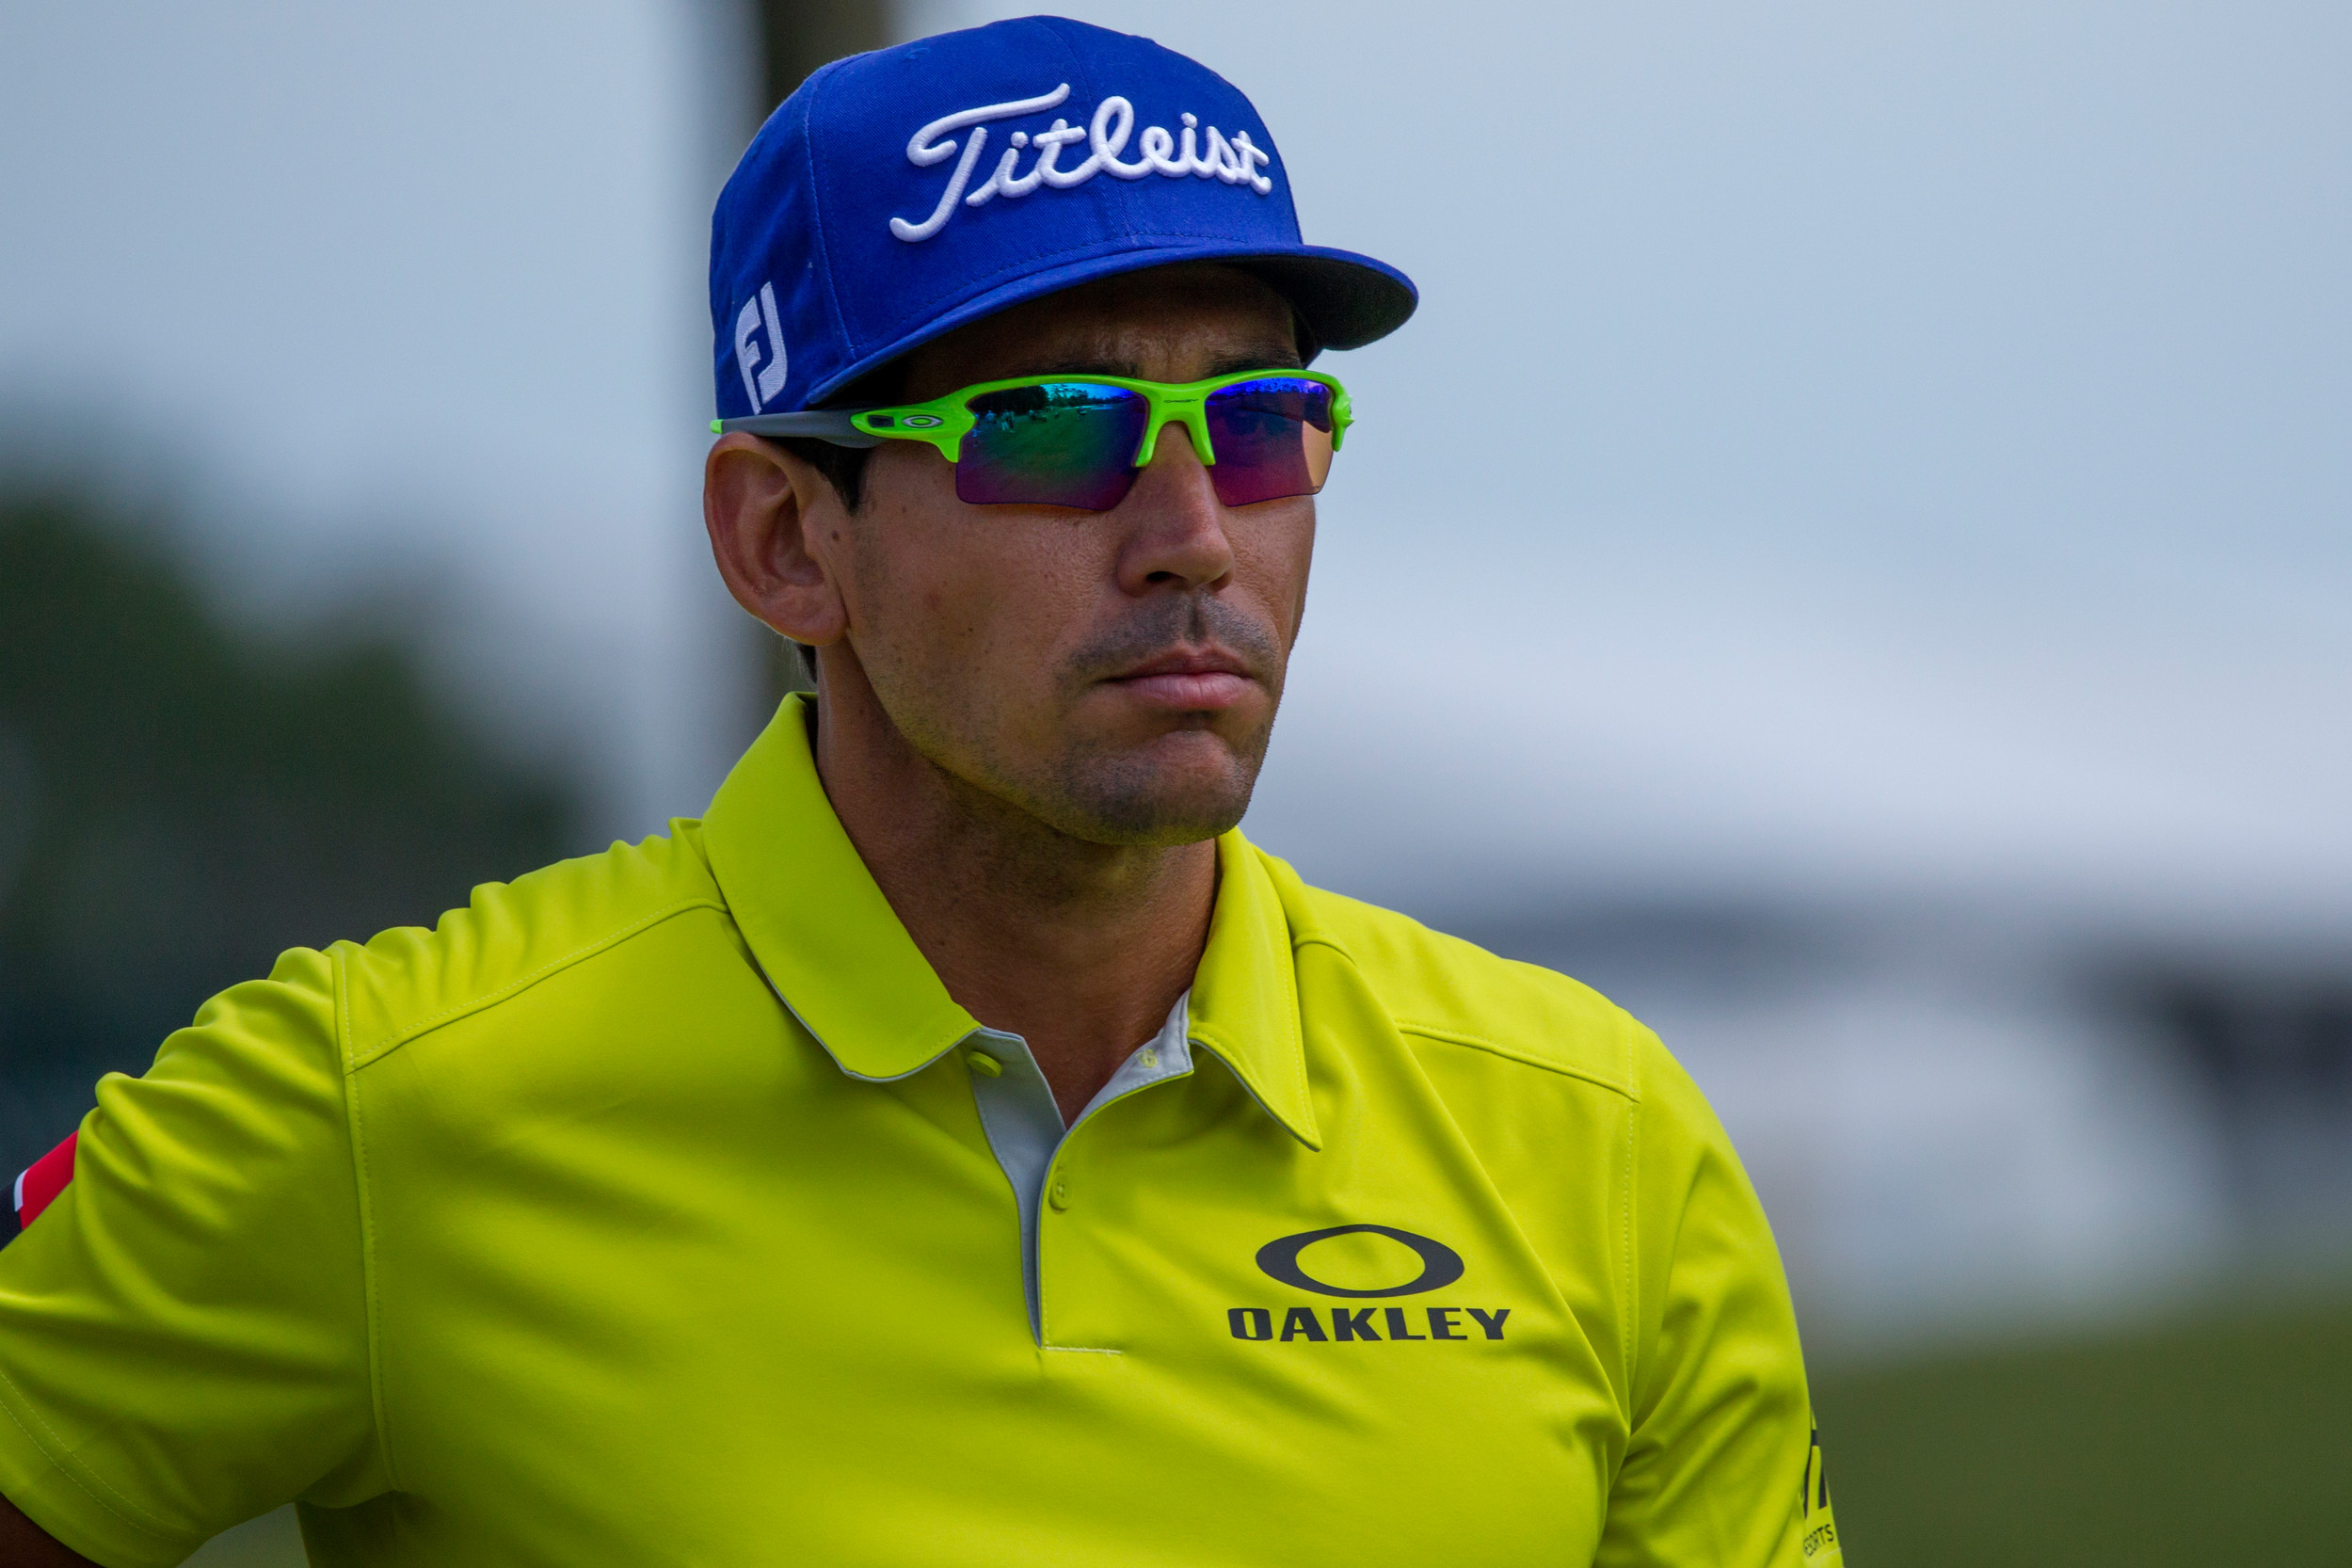 Rafa Cabrera-Bello of Spain ties for fourth place at THE PLAYERS Championship with Kyle Stanley of the United States.